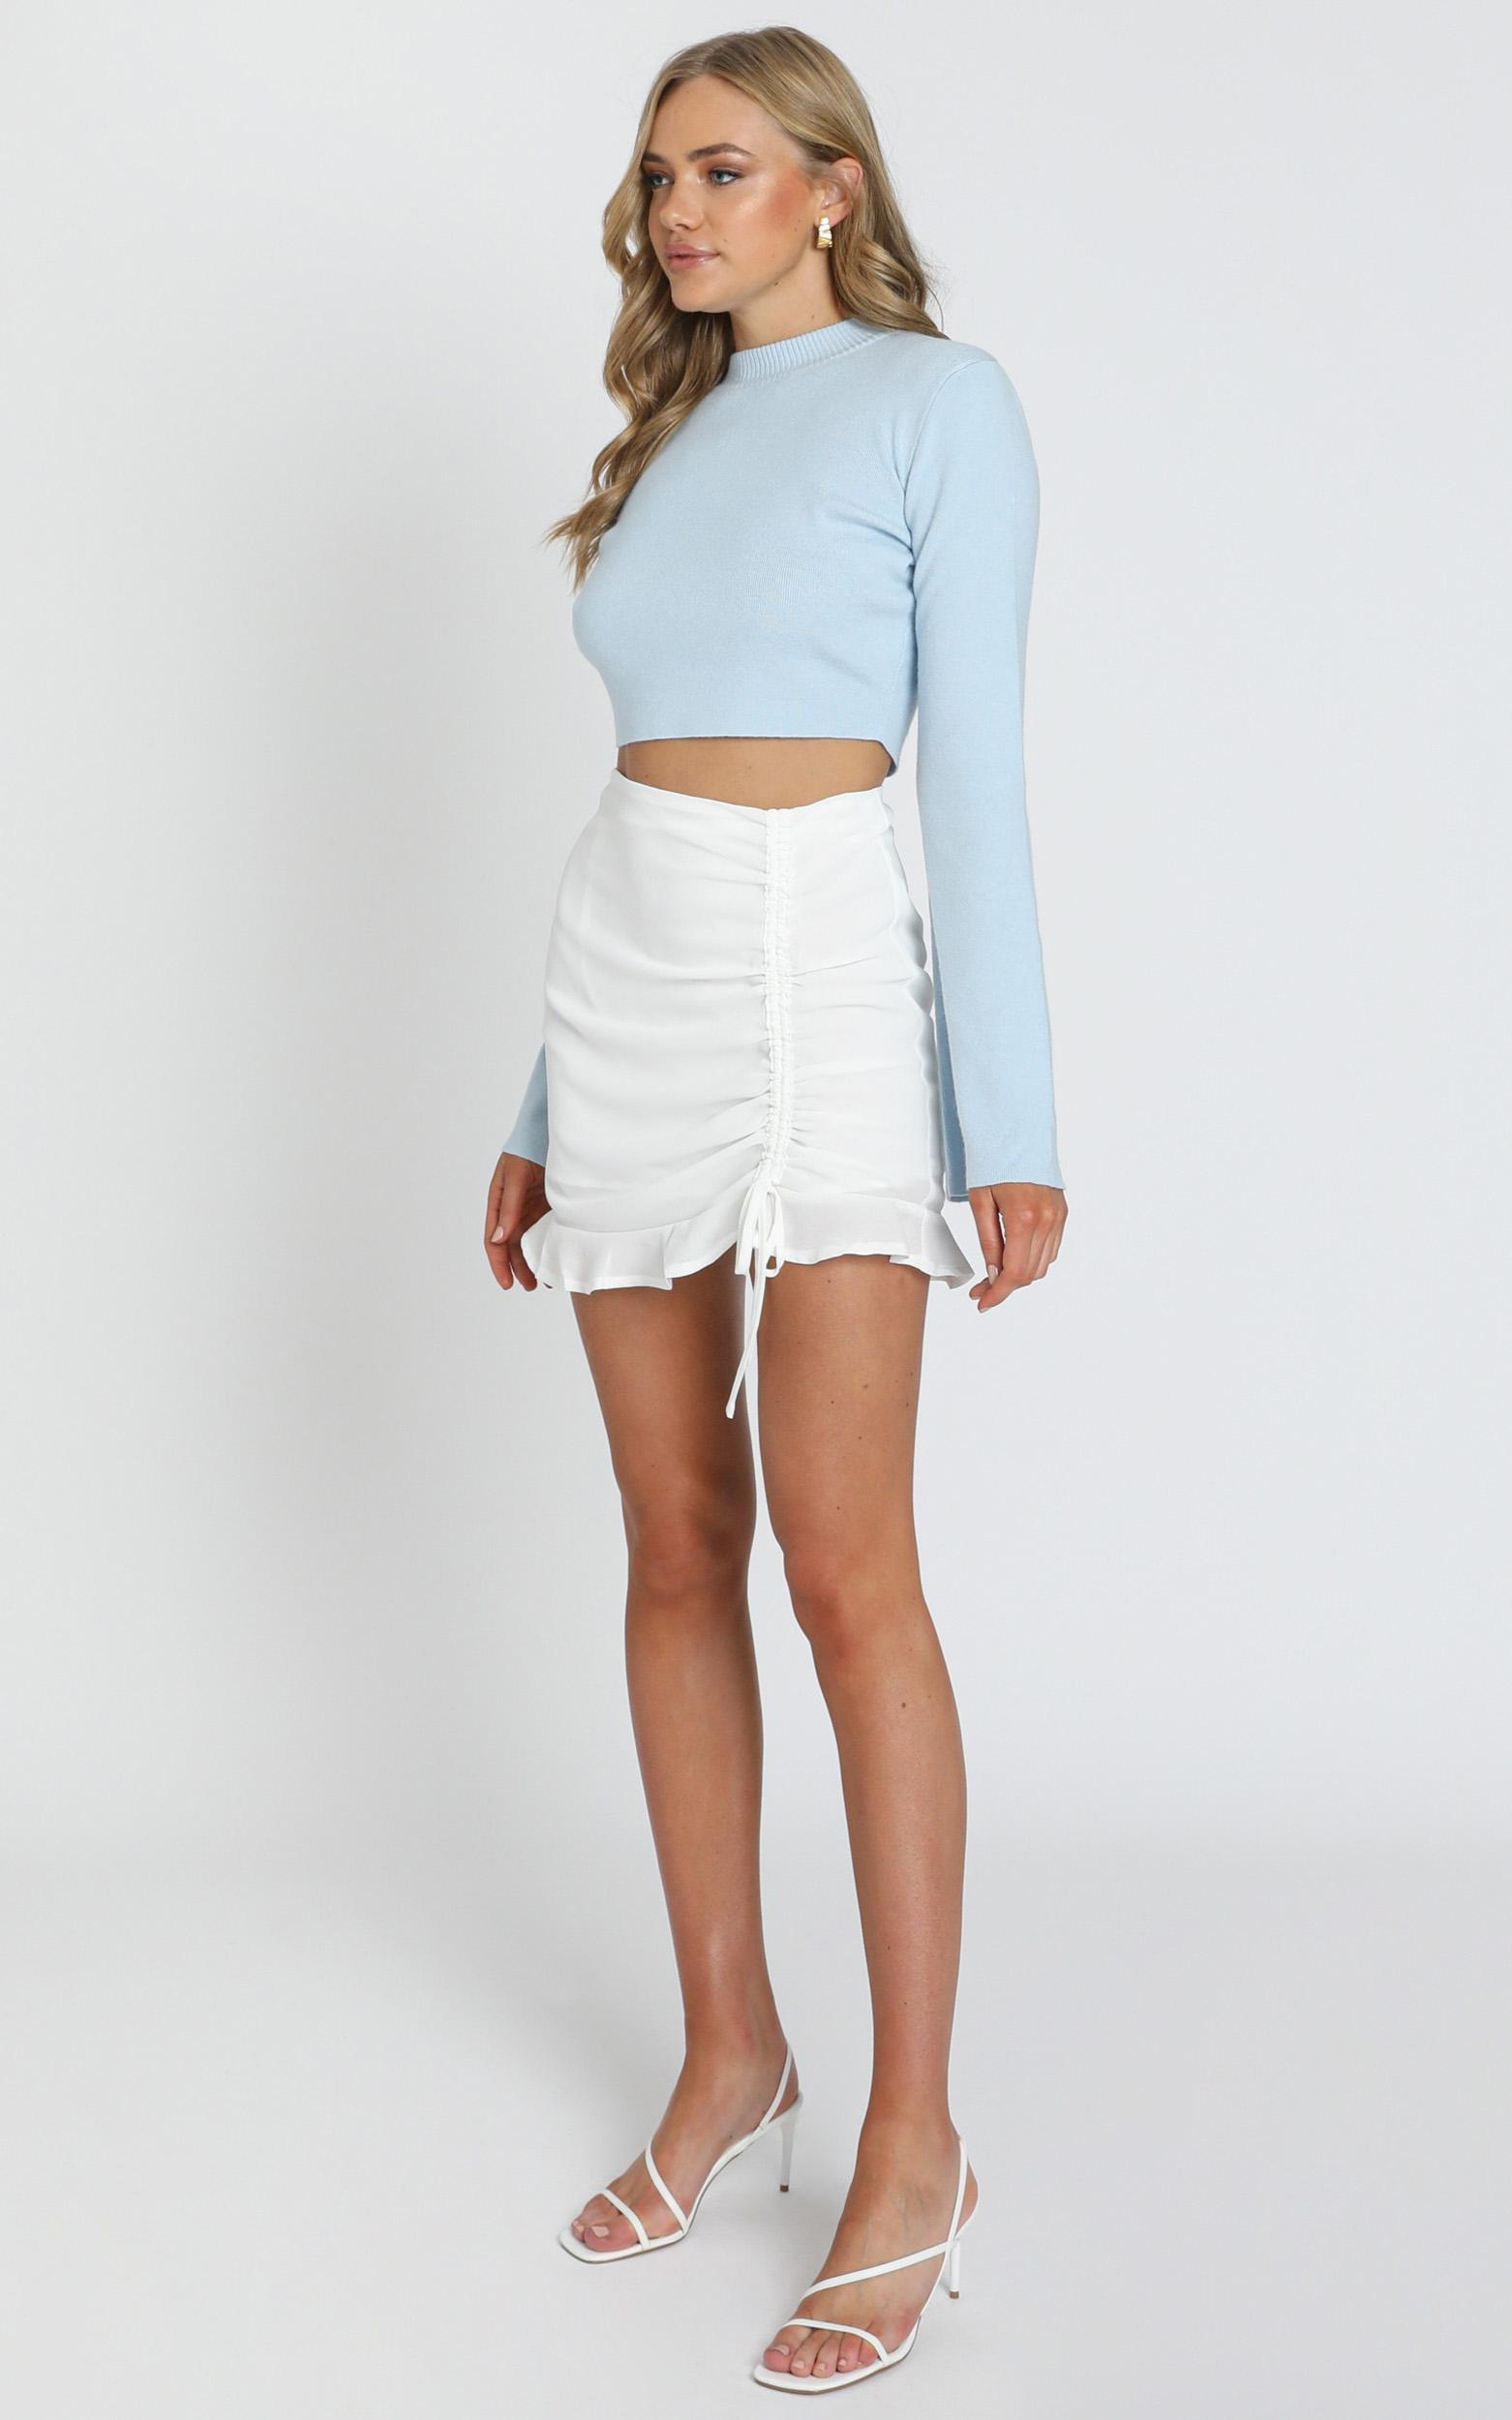 Dreamy Day Gathered Skirt in white - 6 (XS), White, hi-res image number null